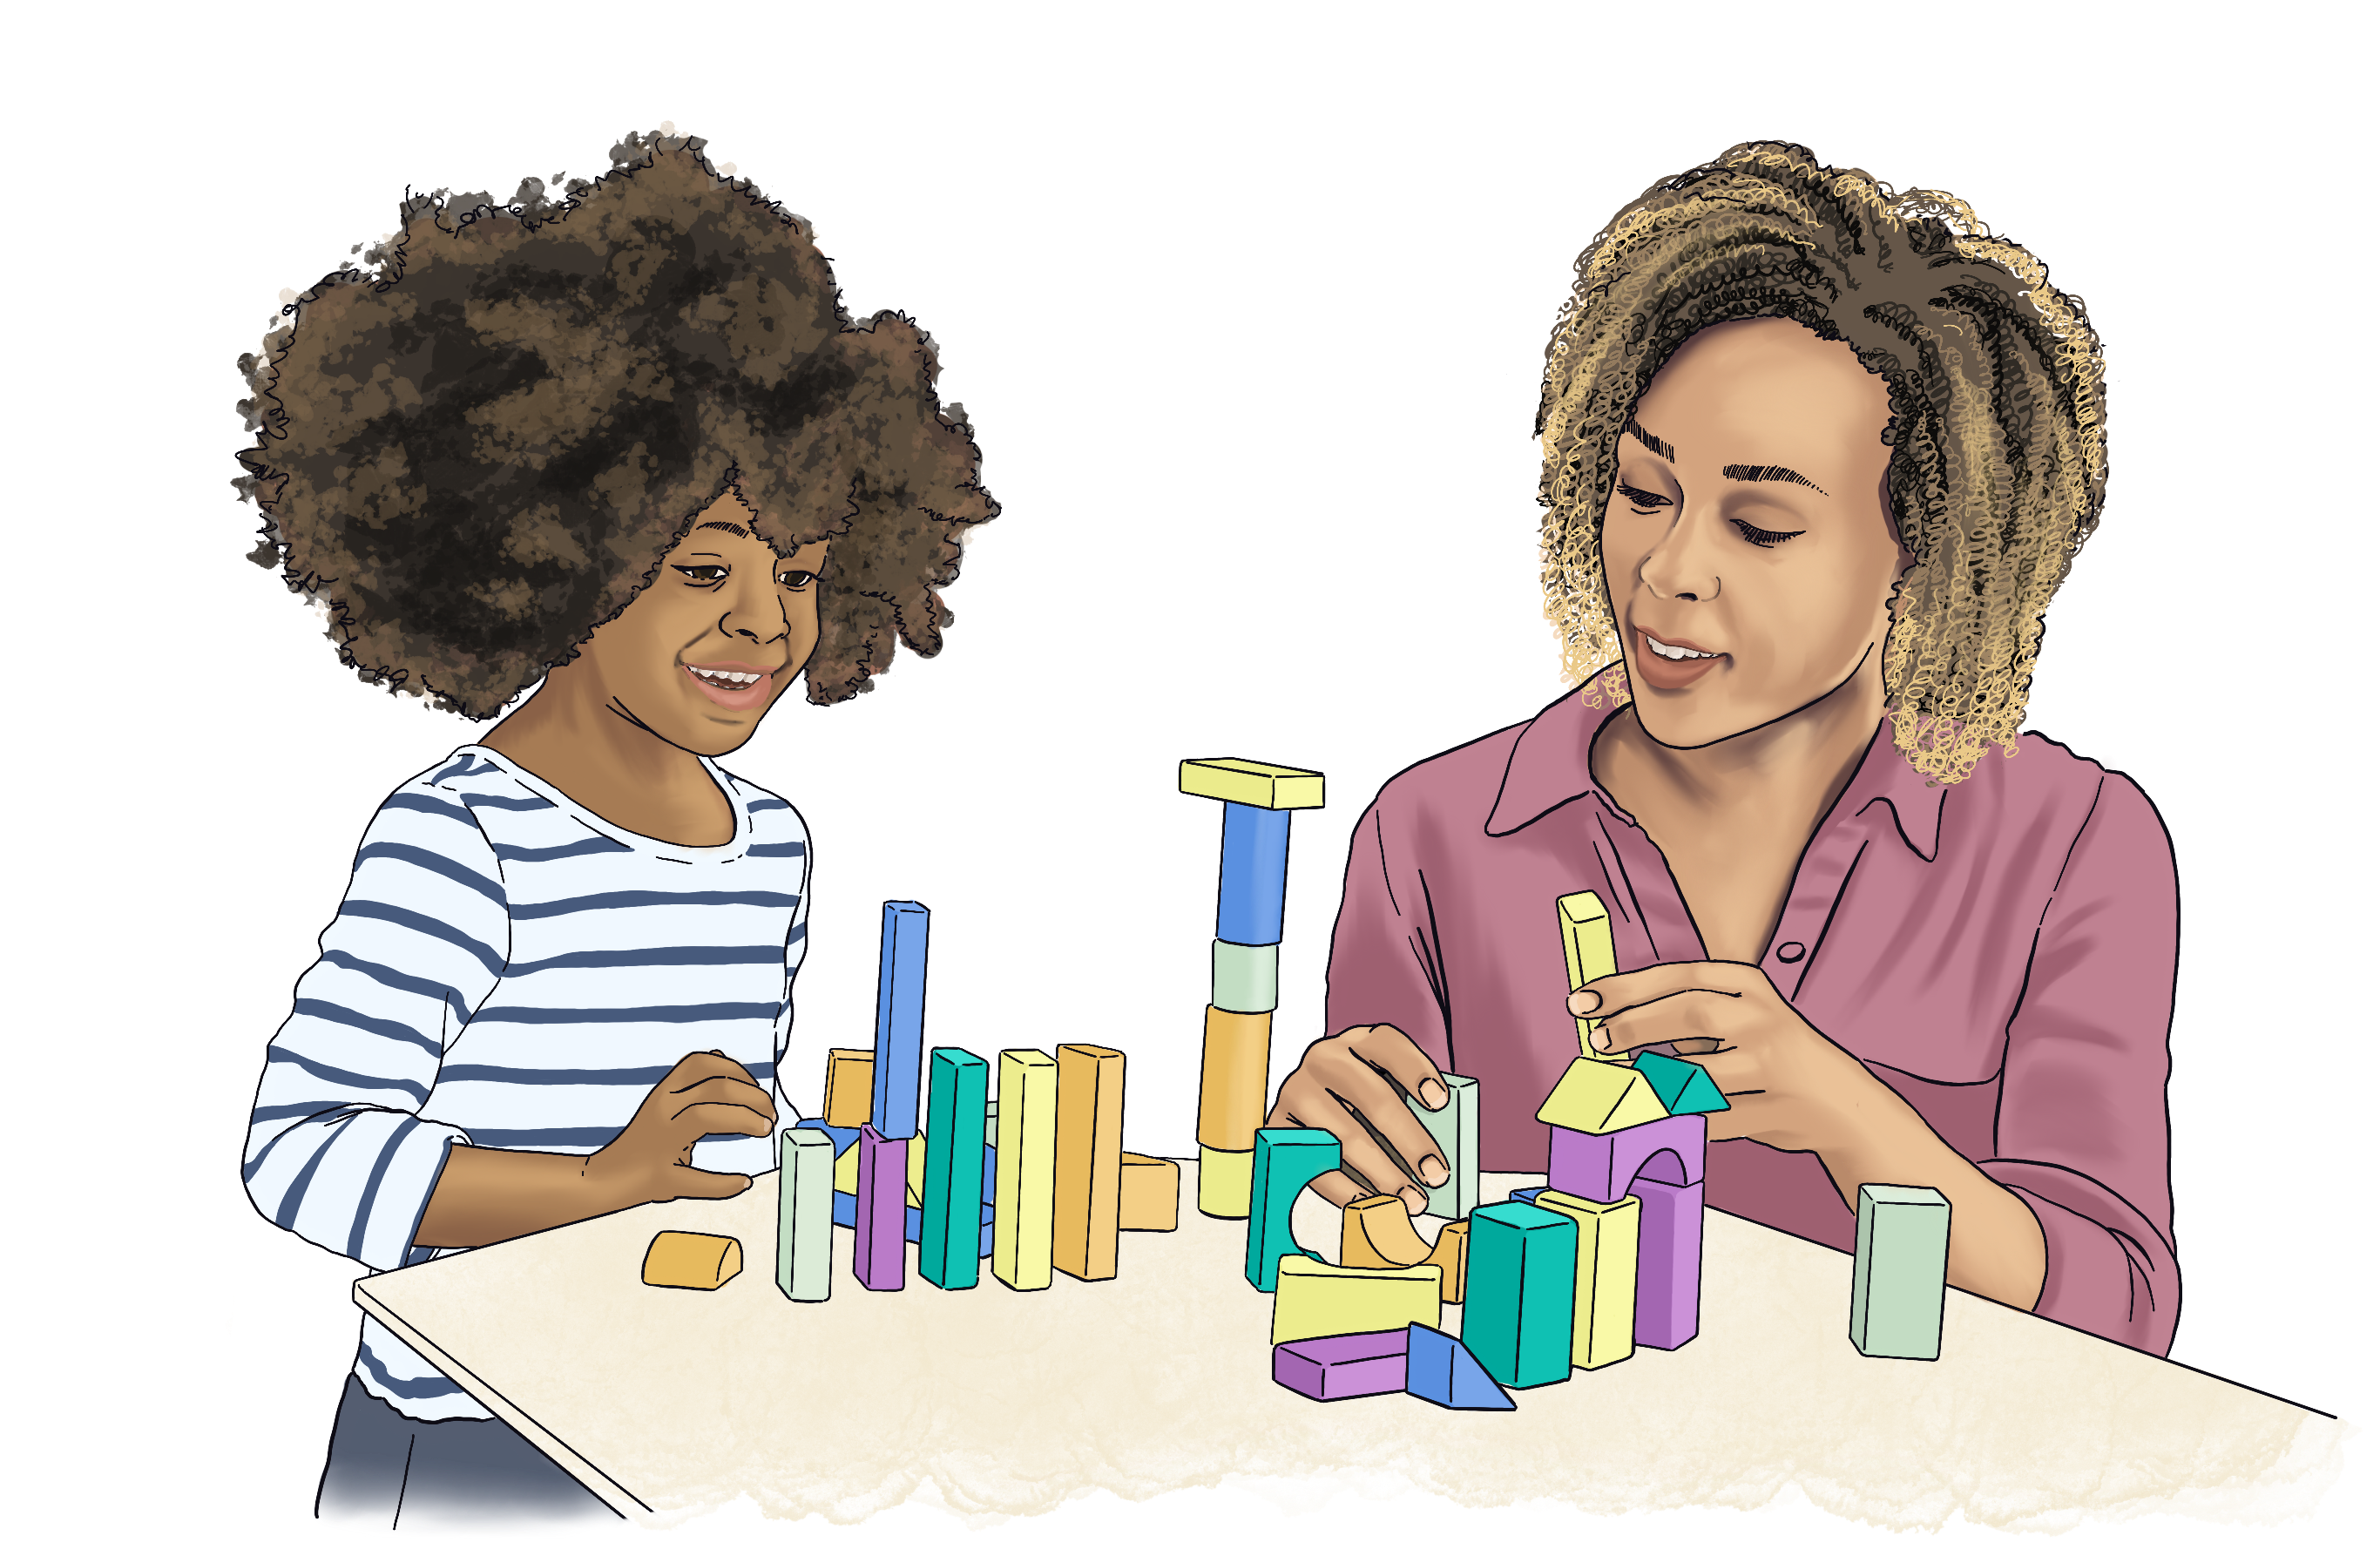 Illustration of a mother working with her daughter